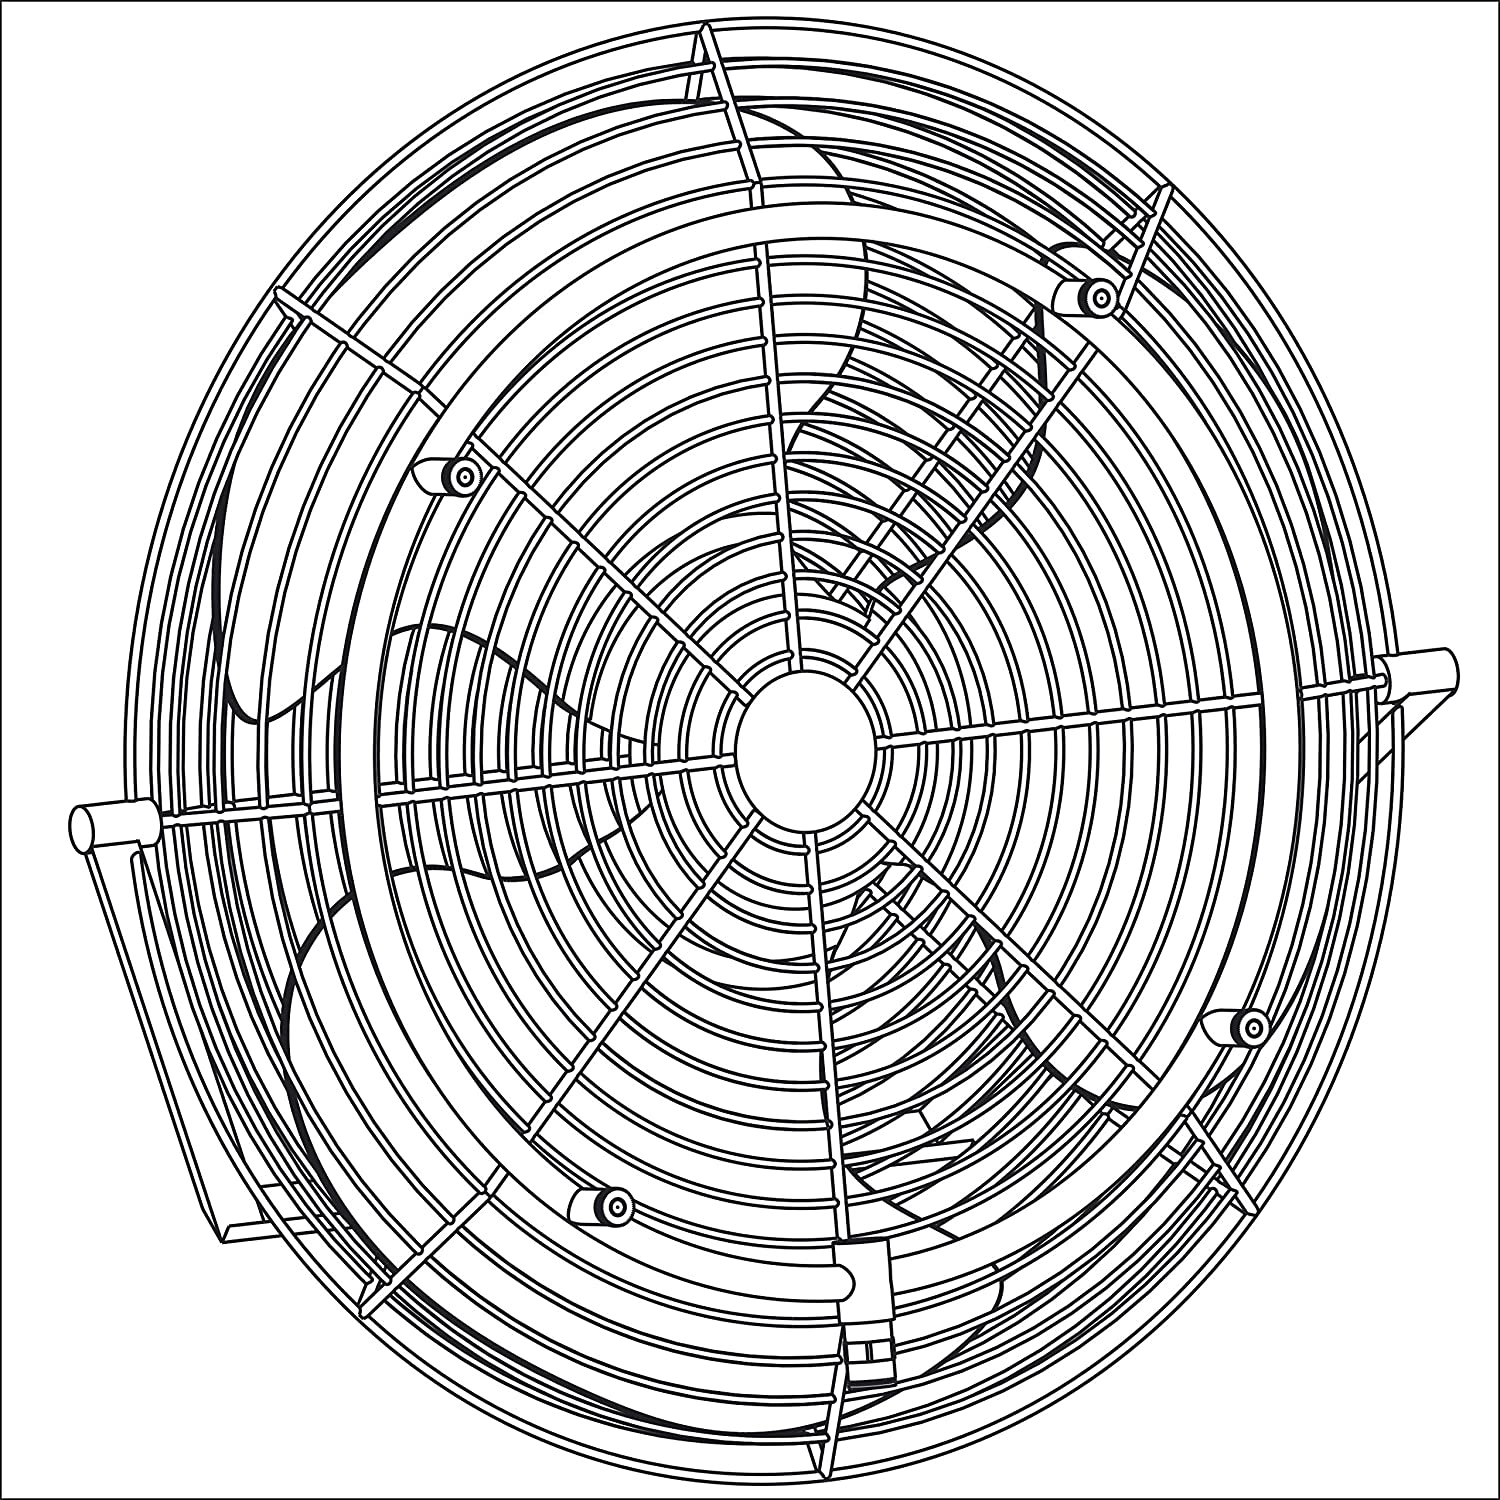 mistcooling Stainless Steel Fan Misting Ring 15 Fan 6 Nozzles-Recommended for Fans with 18-20 Diameter Shinny Silver